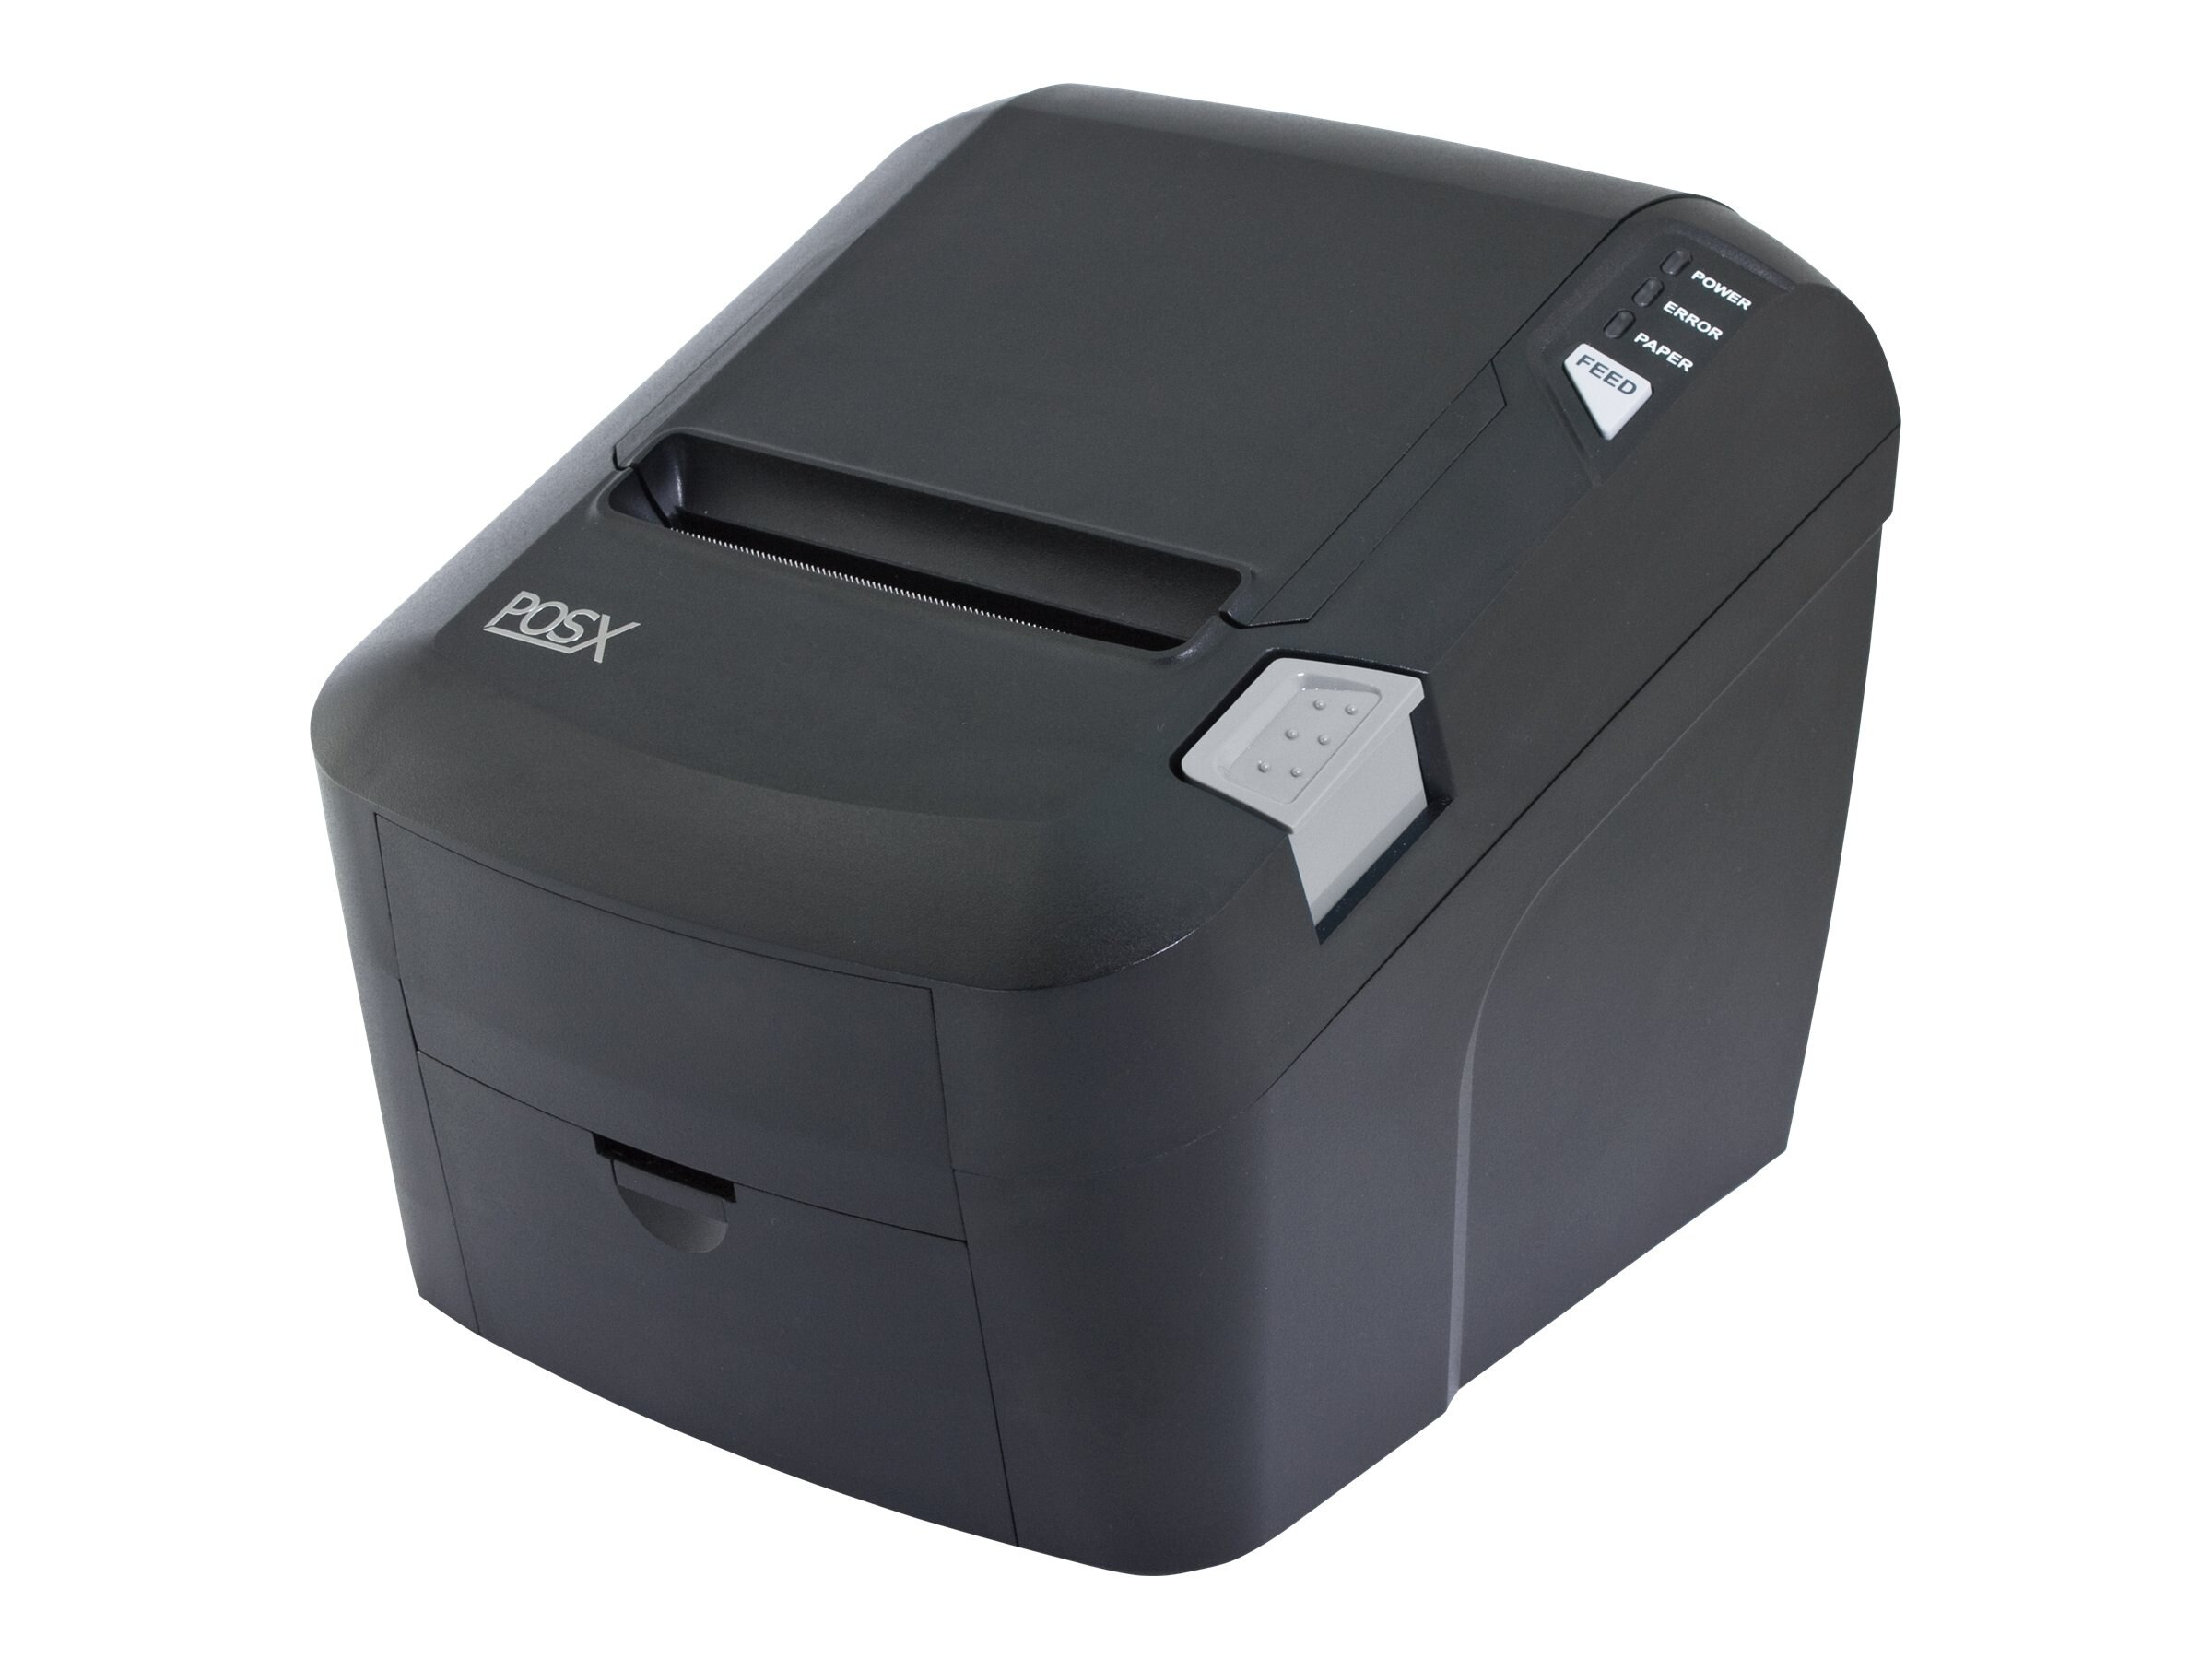 Pos-X EVO HiSpeed USB Thermal Receipt Printer - Black, EVO-PT3-1HU, 16012129, Printers - POS Receipt